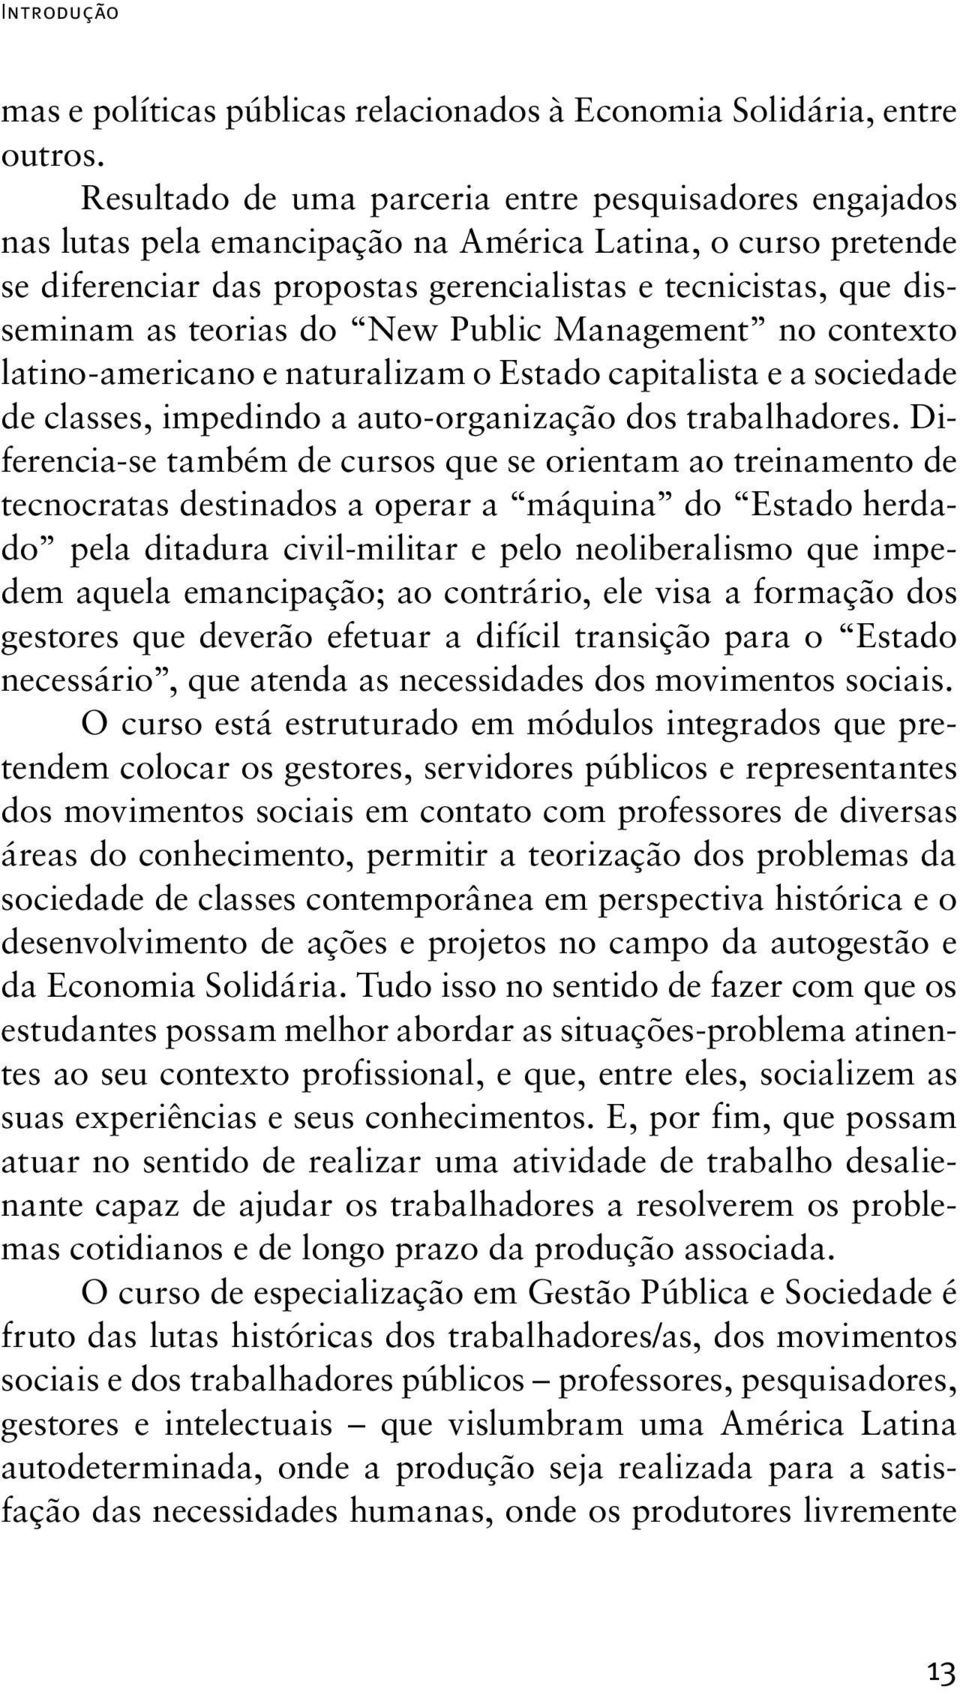 teorias do New Public Management no contexto latino-americano e naturalizam o Estado capitalista e a sociedade de classes, impedindo a auto-organização dos trabalhadores.